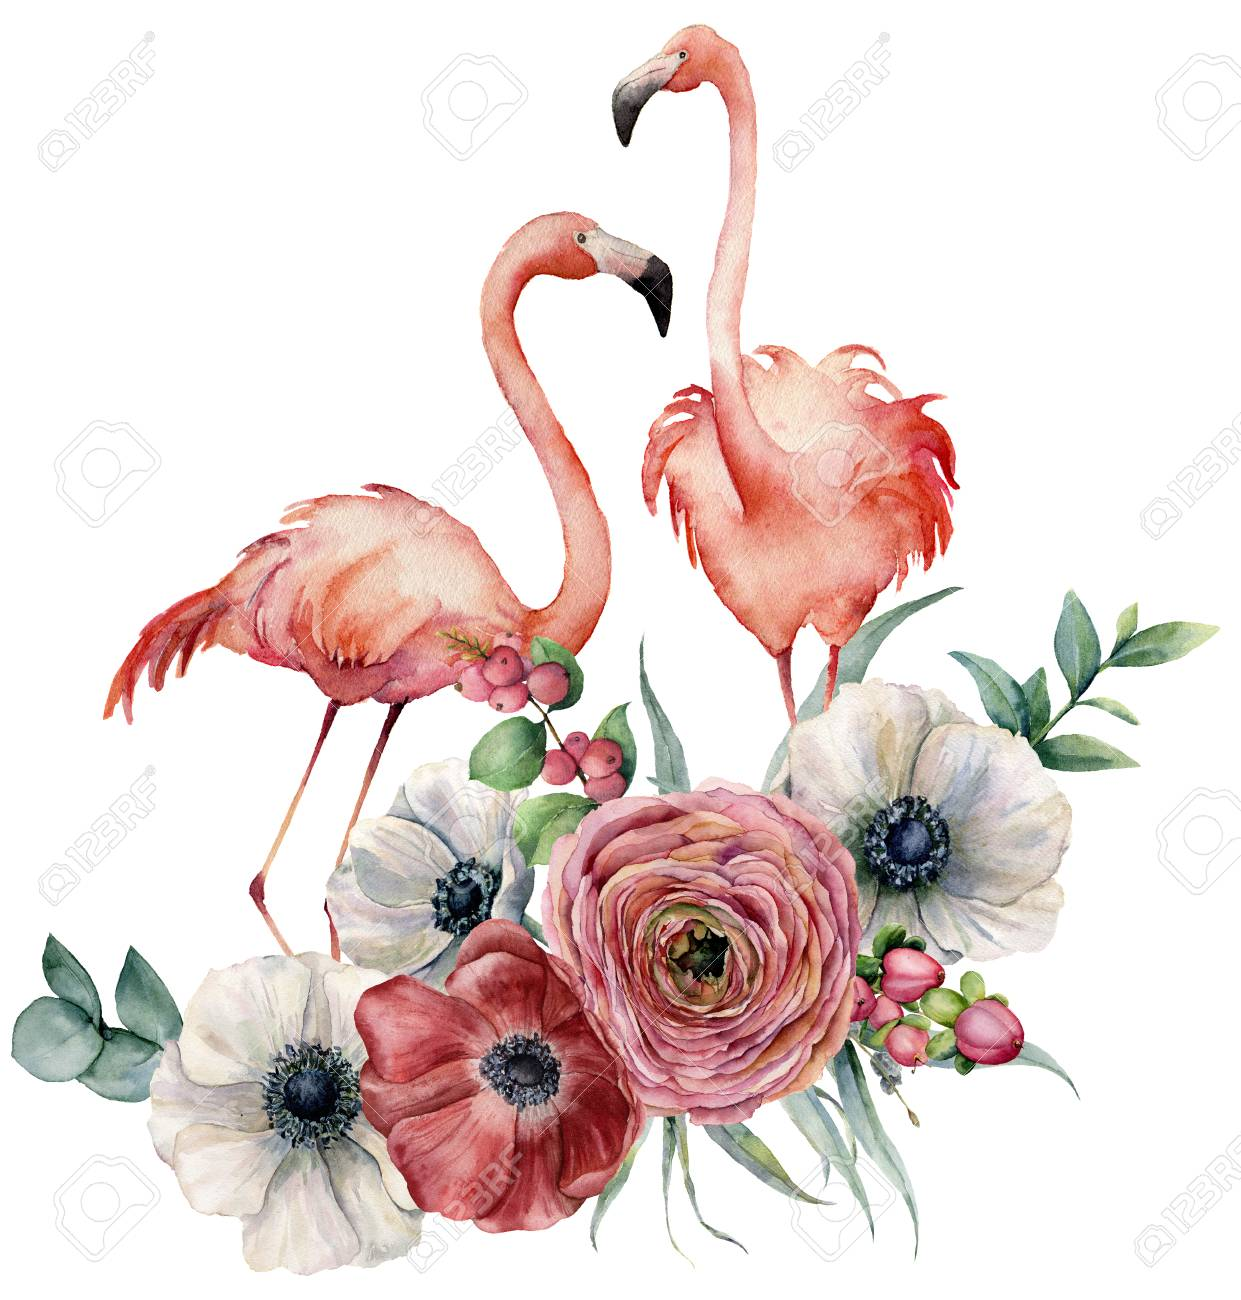 Watercolor flamingo with ranunculus bouquet. Hand painted exotic birds with anemone, eucalyptus leaves and branch isolated on white background. Wildlife illustration for design, print or background. - 103371506